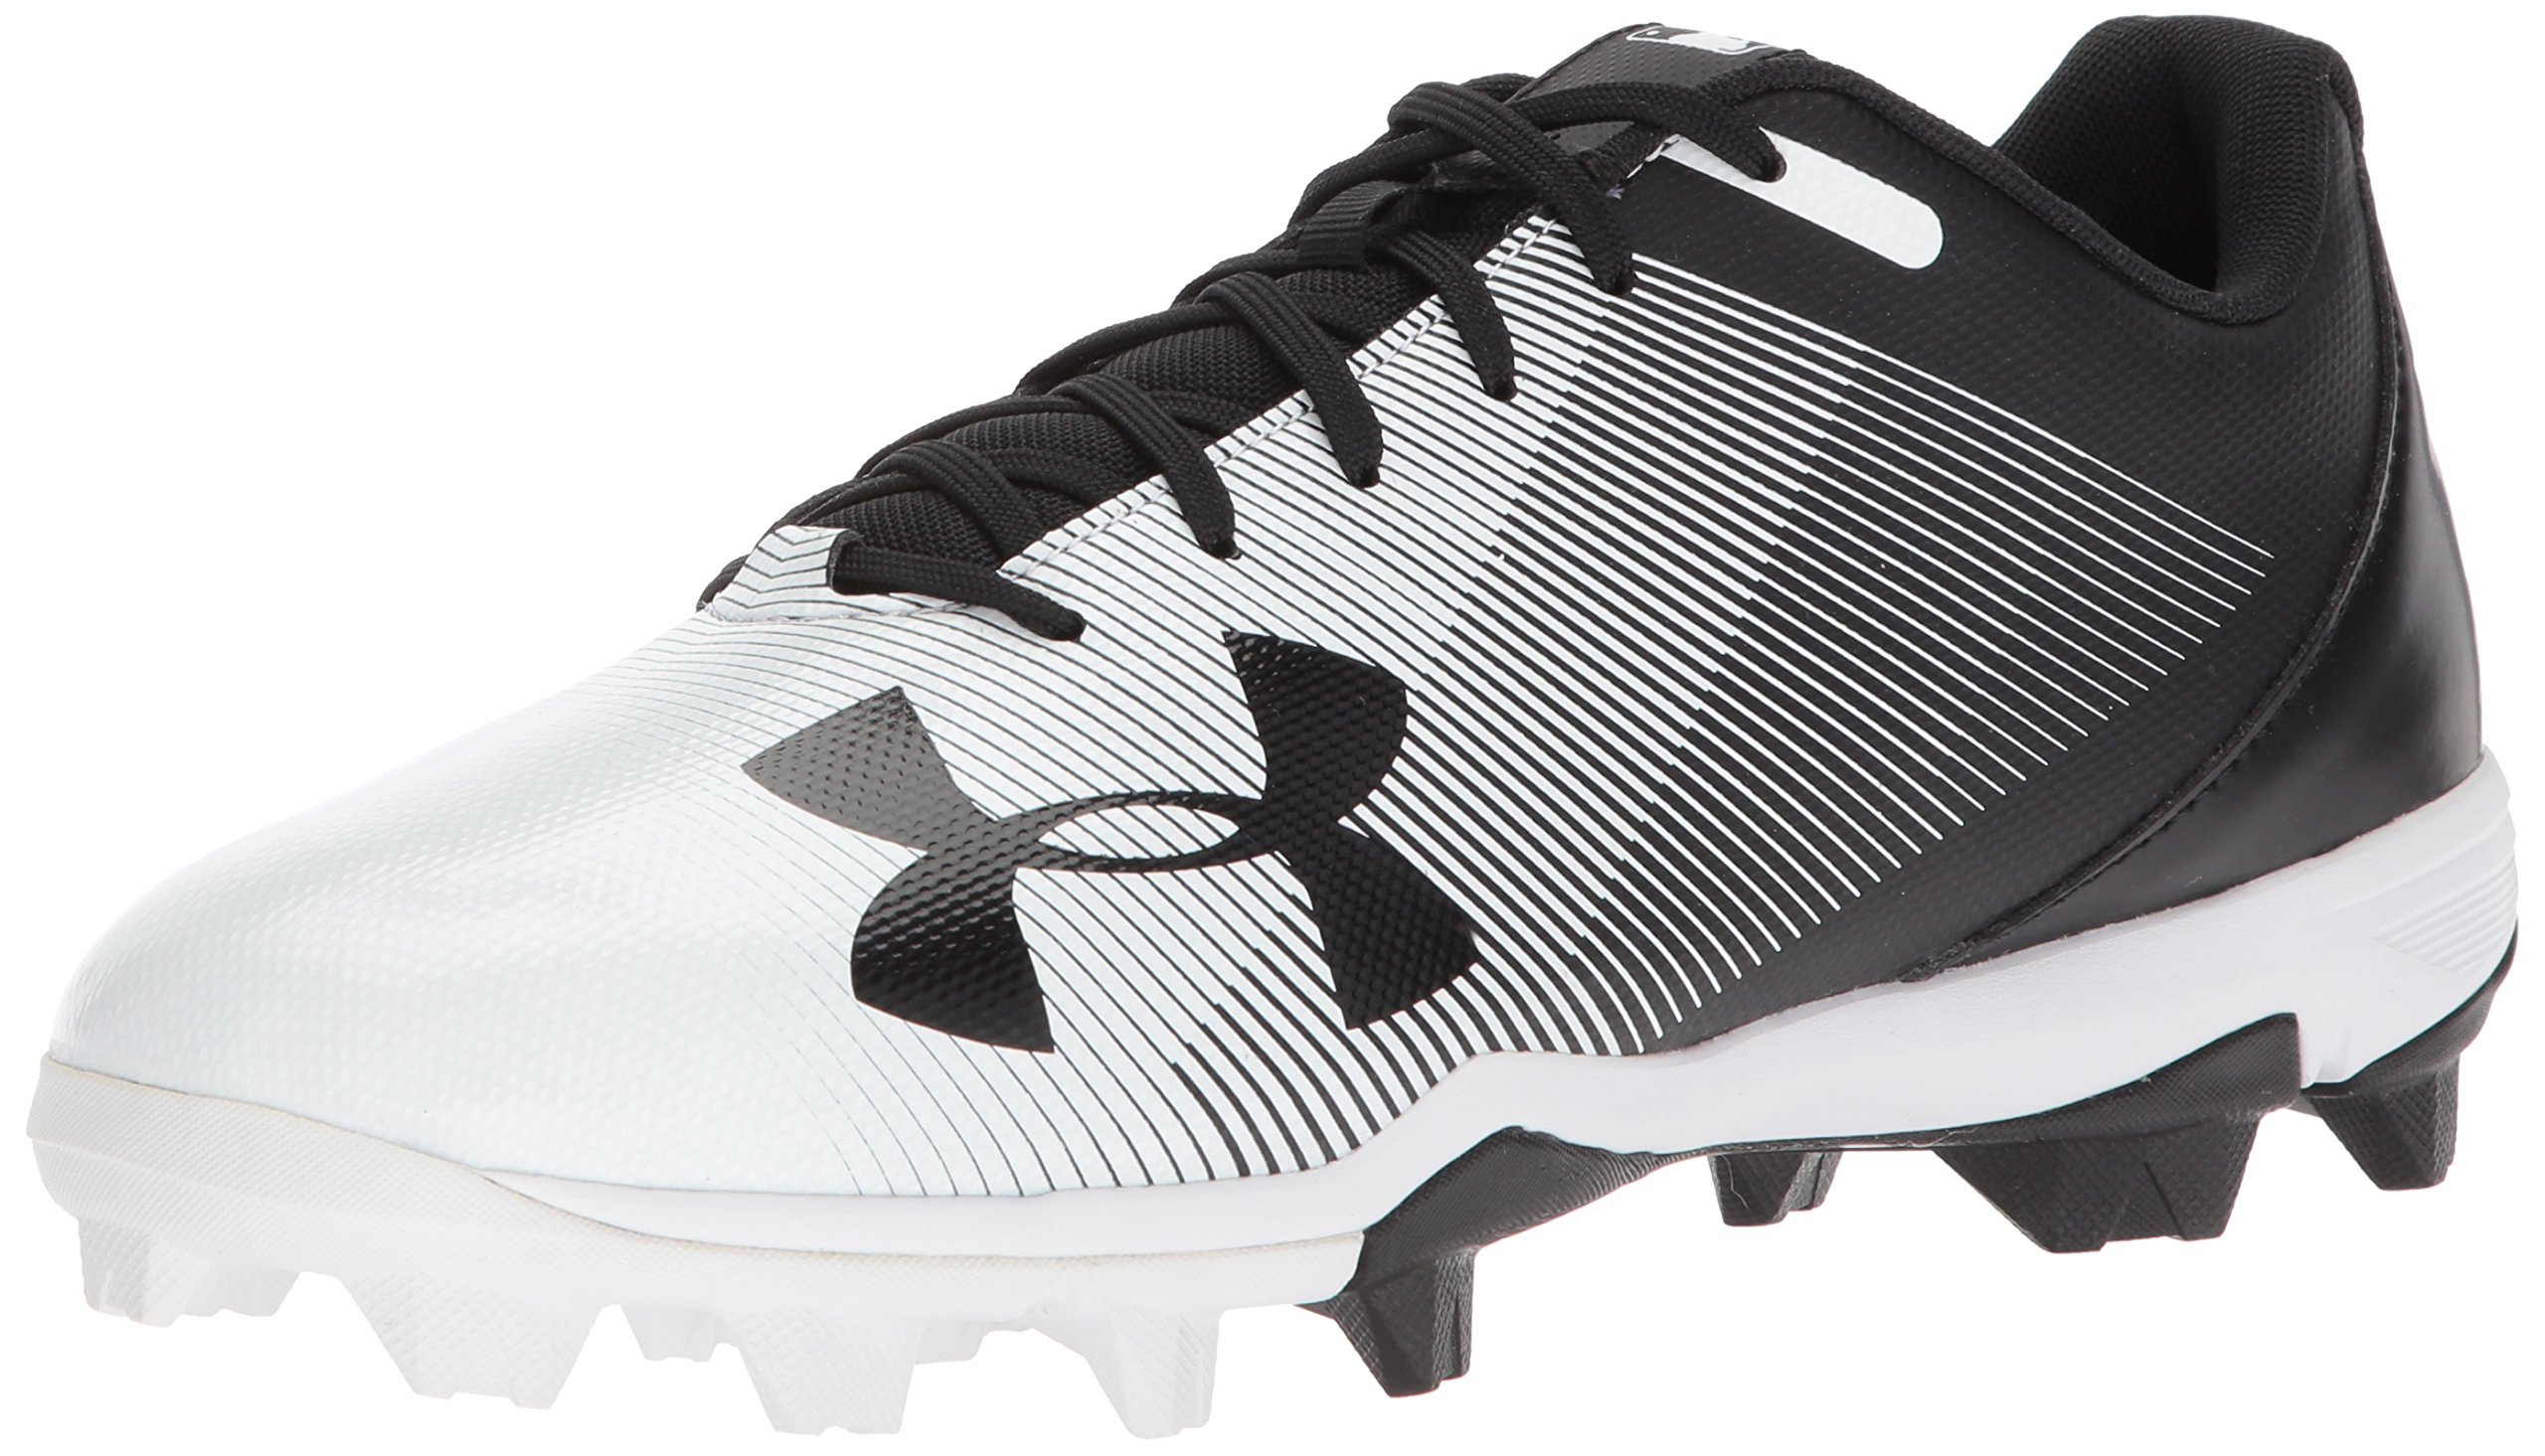 Under Armour Men's Leadoff Low RM Baseball Shoe, Black (011)/White, 10